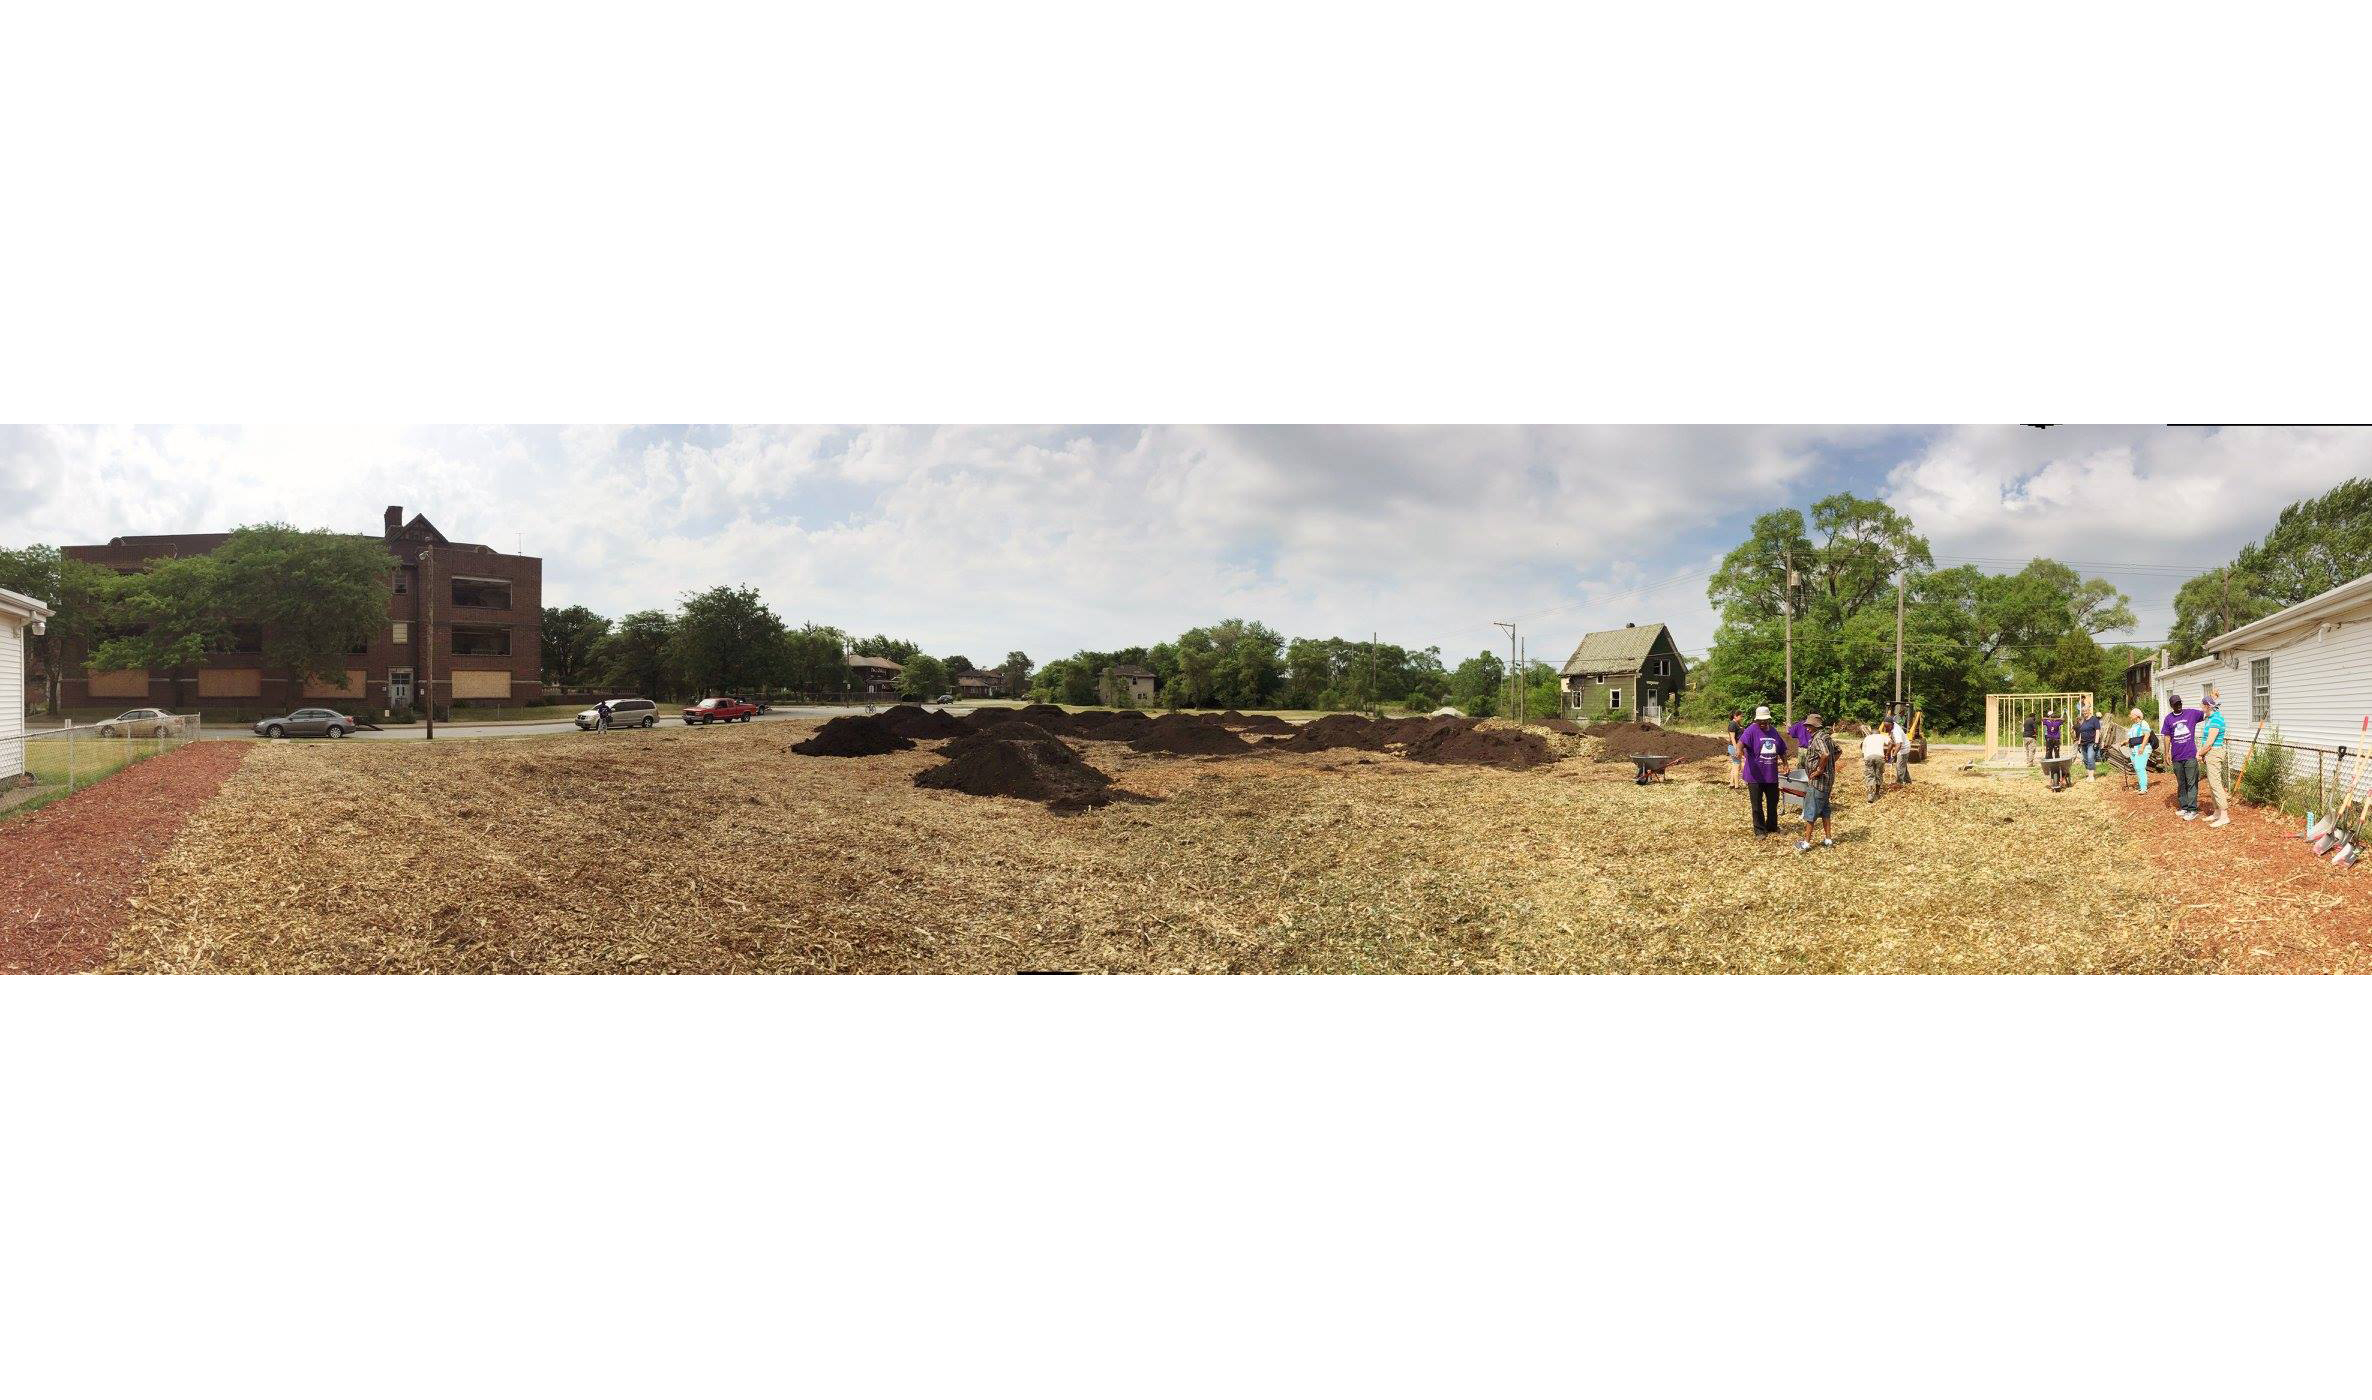 Day 1: Mulch has been spread, the plan has been mapped out, and some dirt-moving has begun